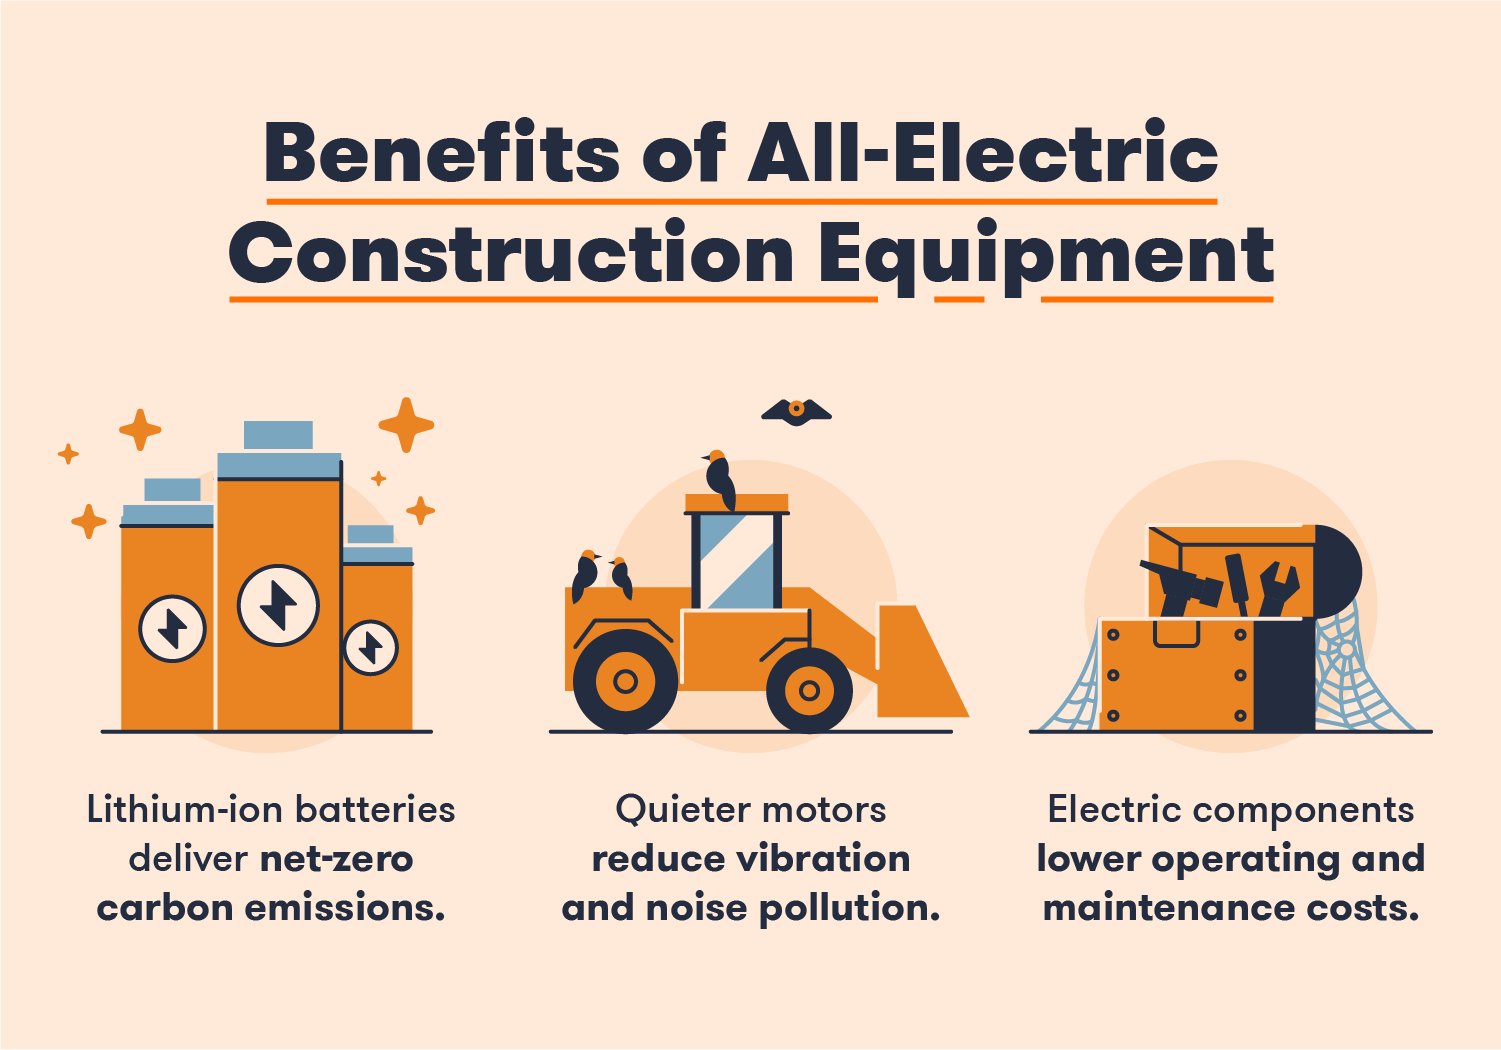 Benefits of All-Electric construction Equipment